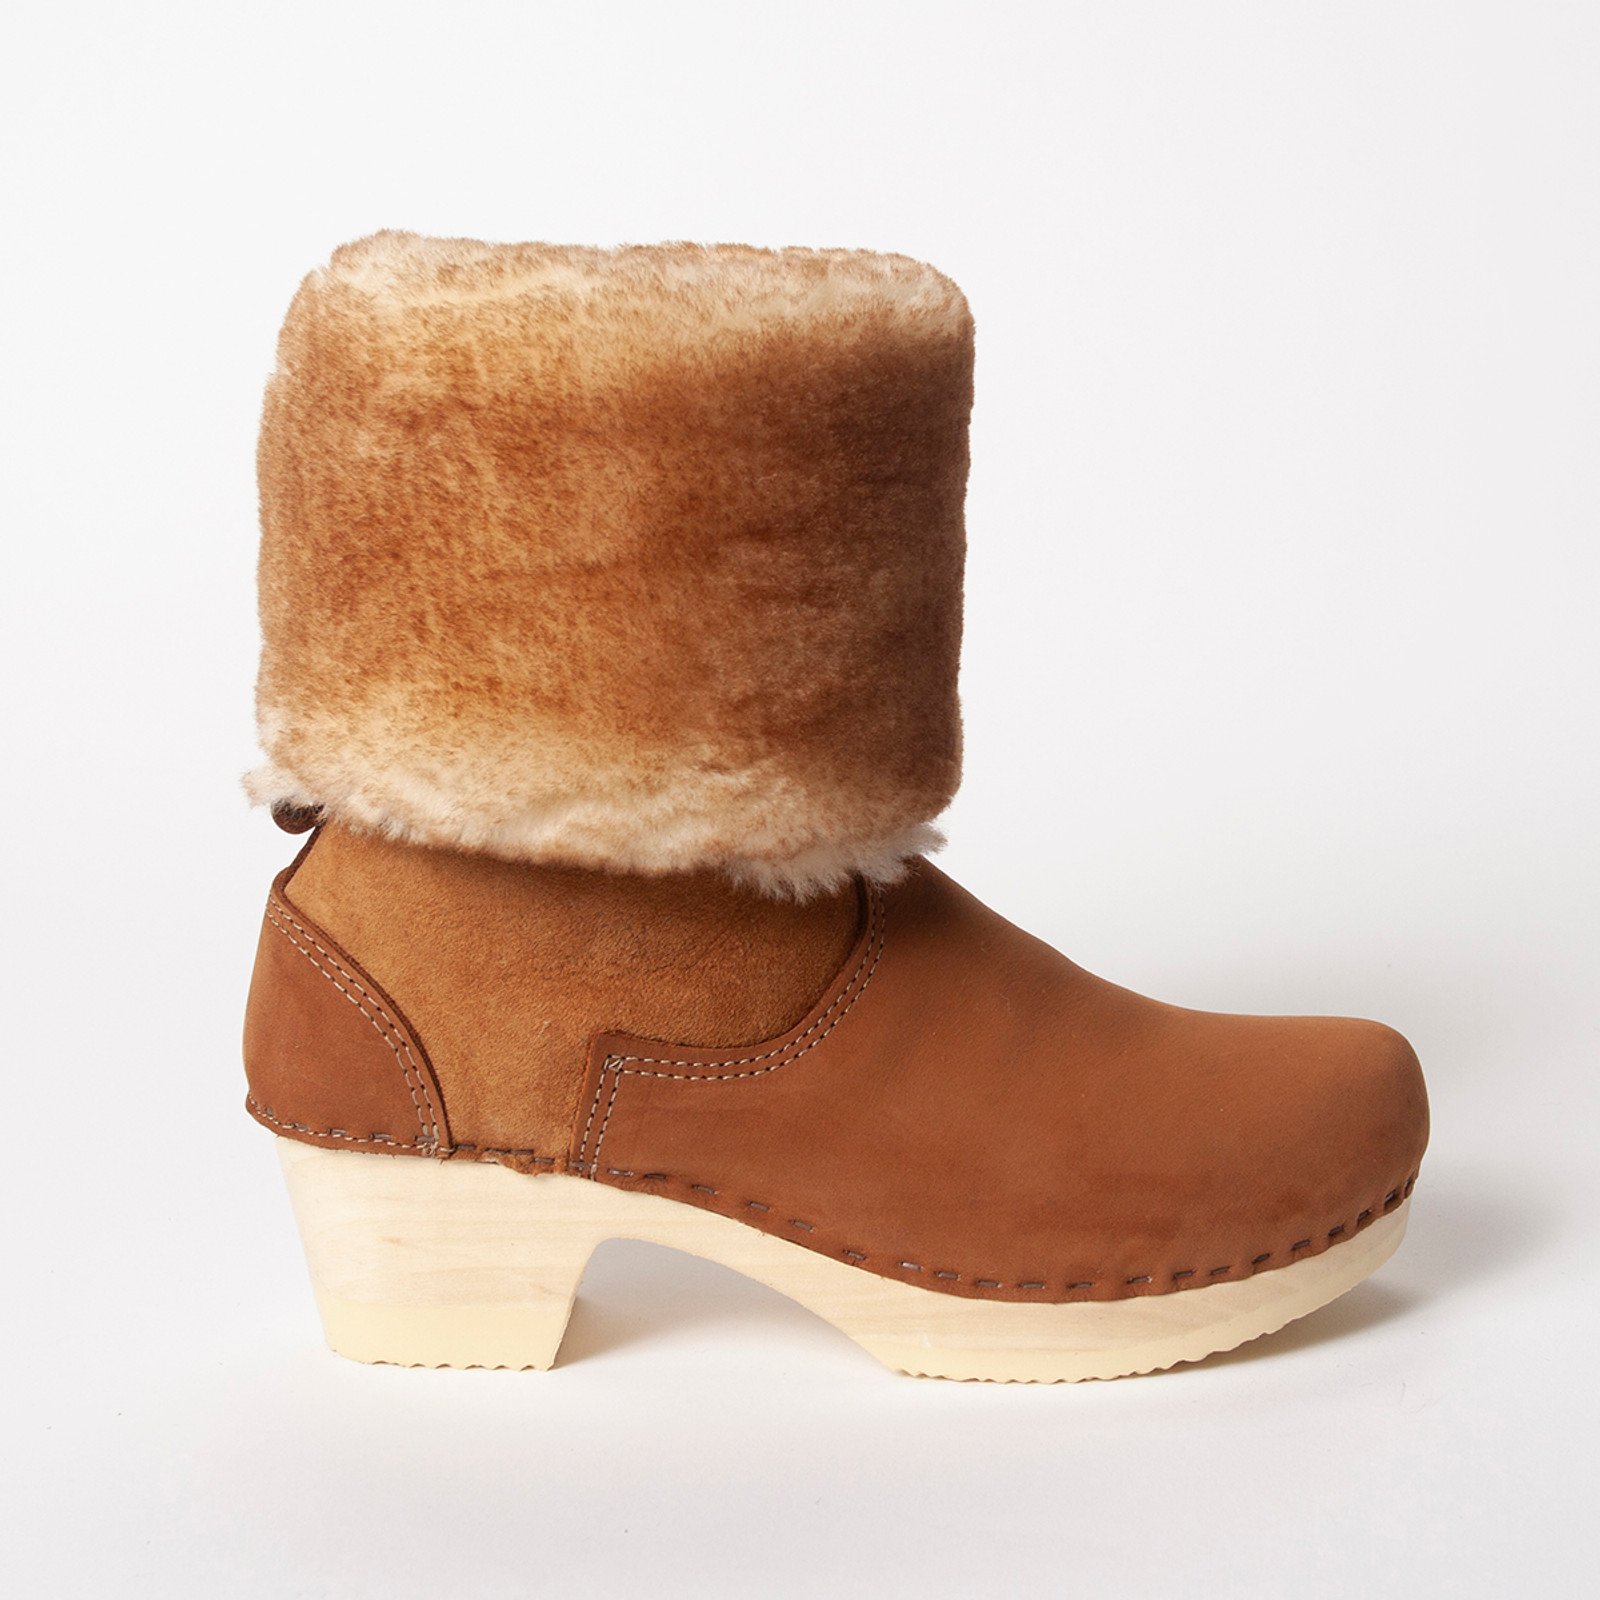 Natural Shearling with Cedar Nu Buc on Natural Base